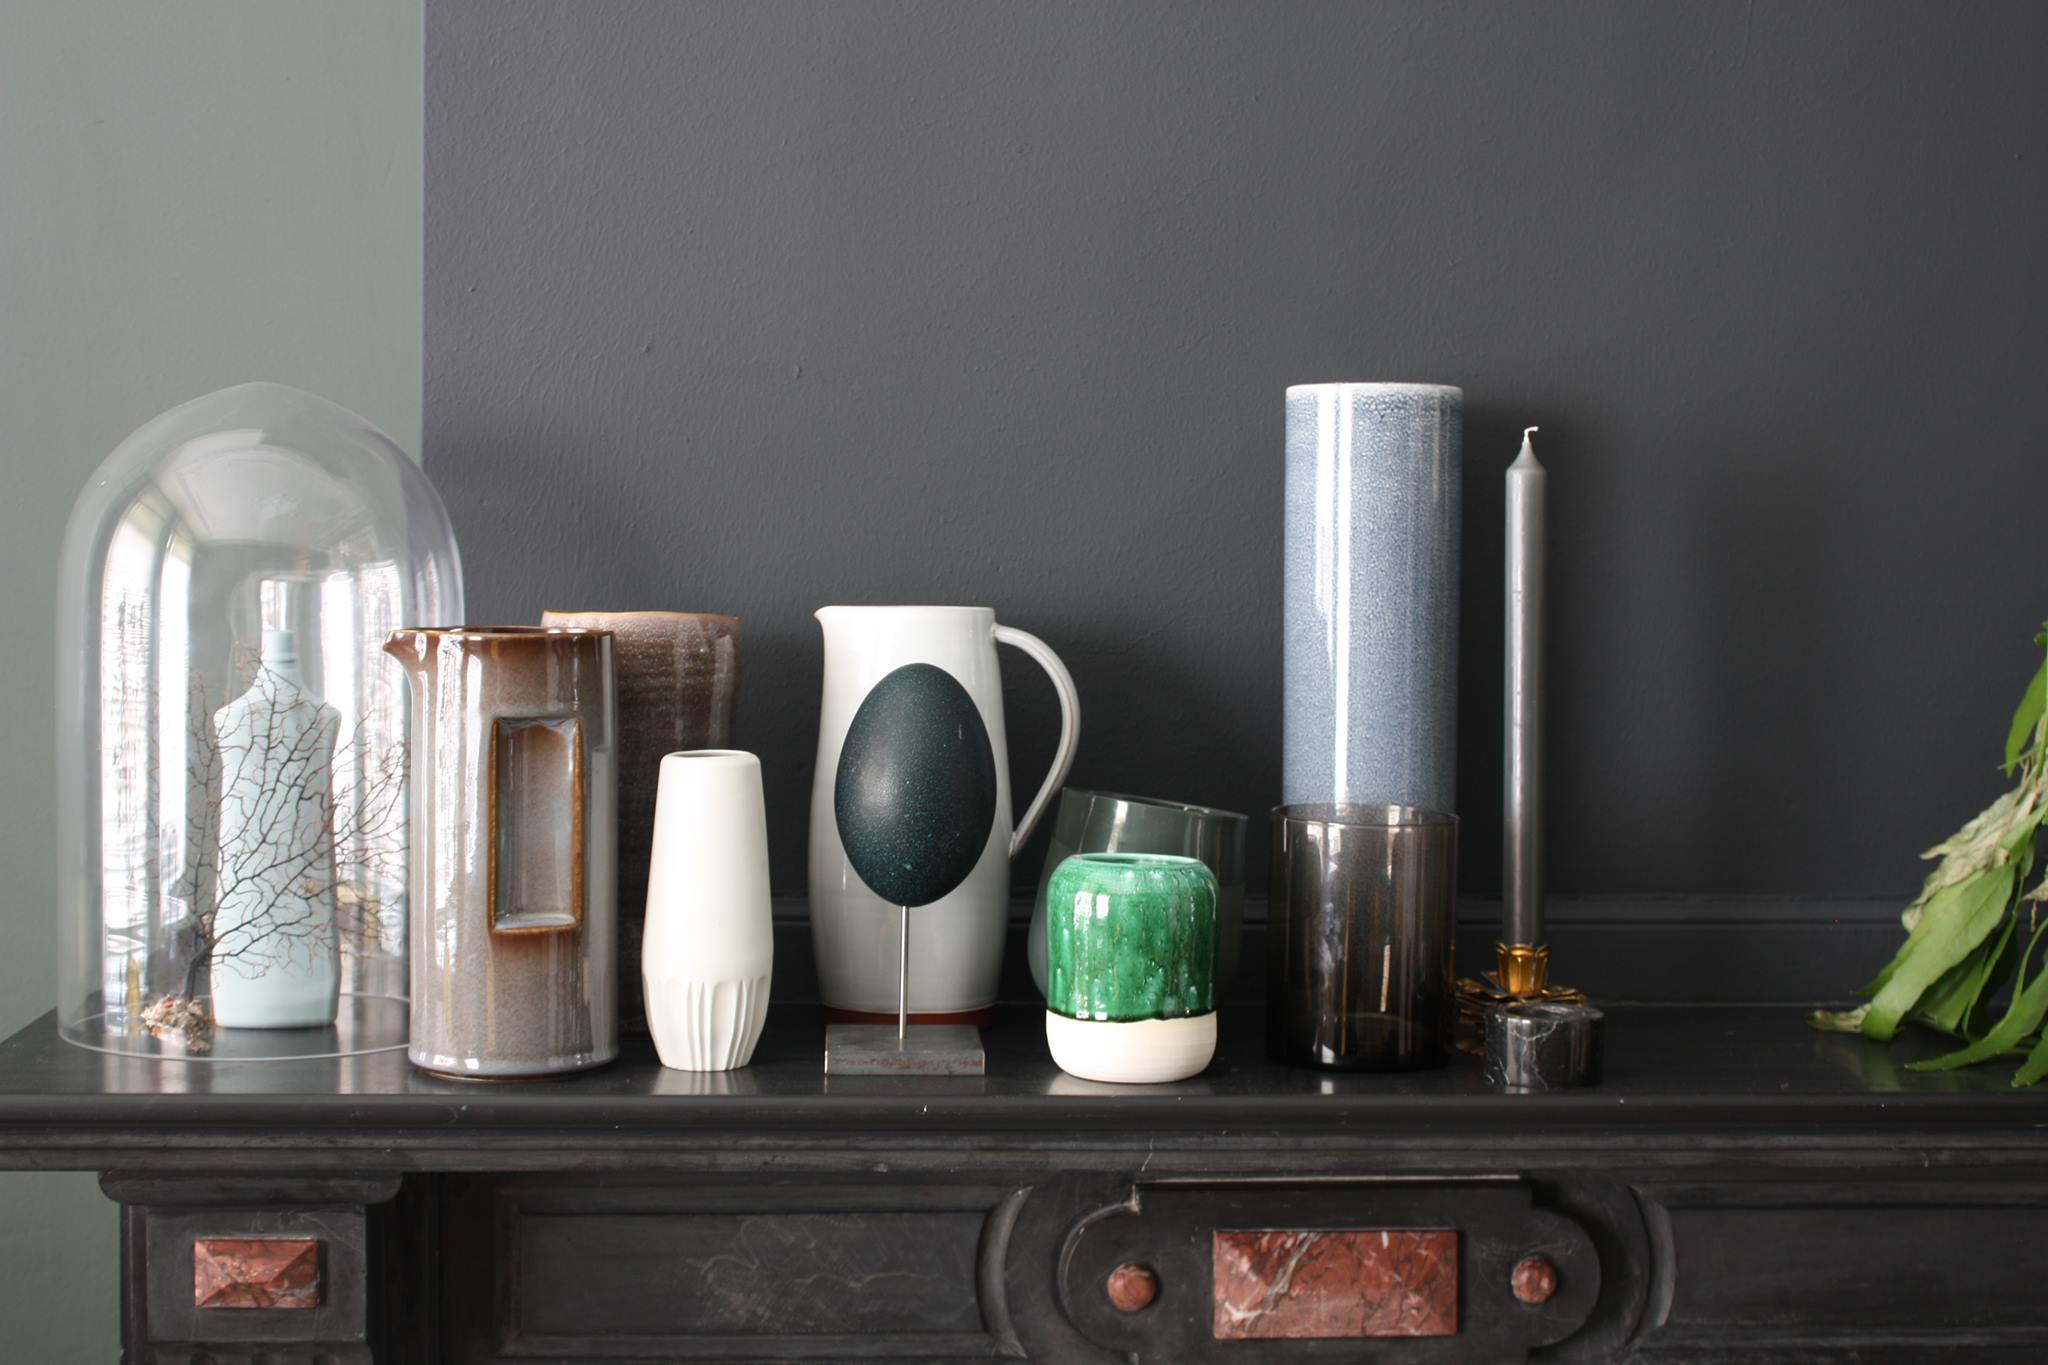 THE NICE STUFF COLLECTOR THEO-BERT POT INTERIEUR BLOG